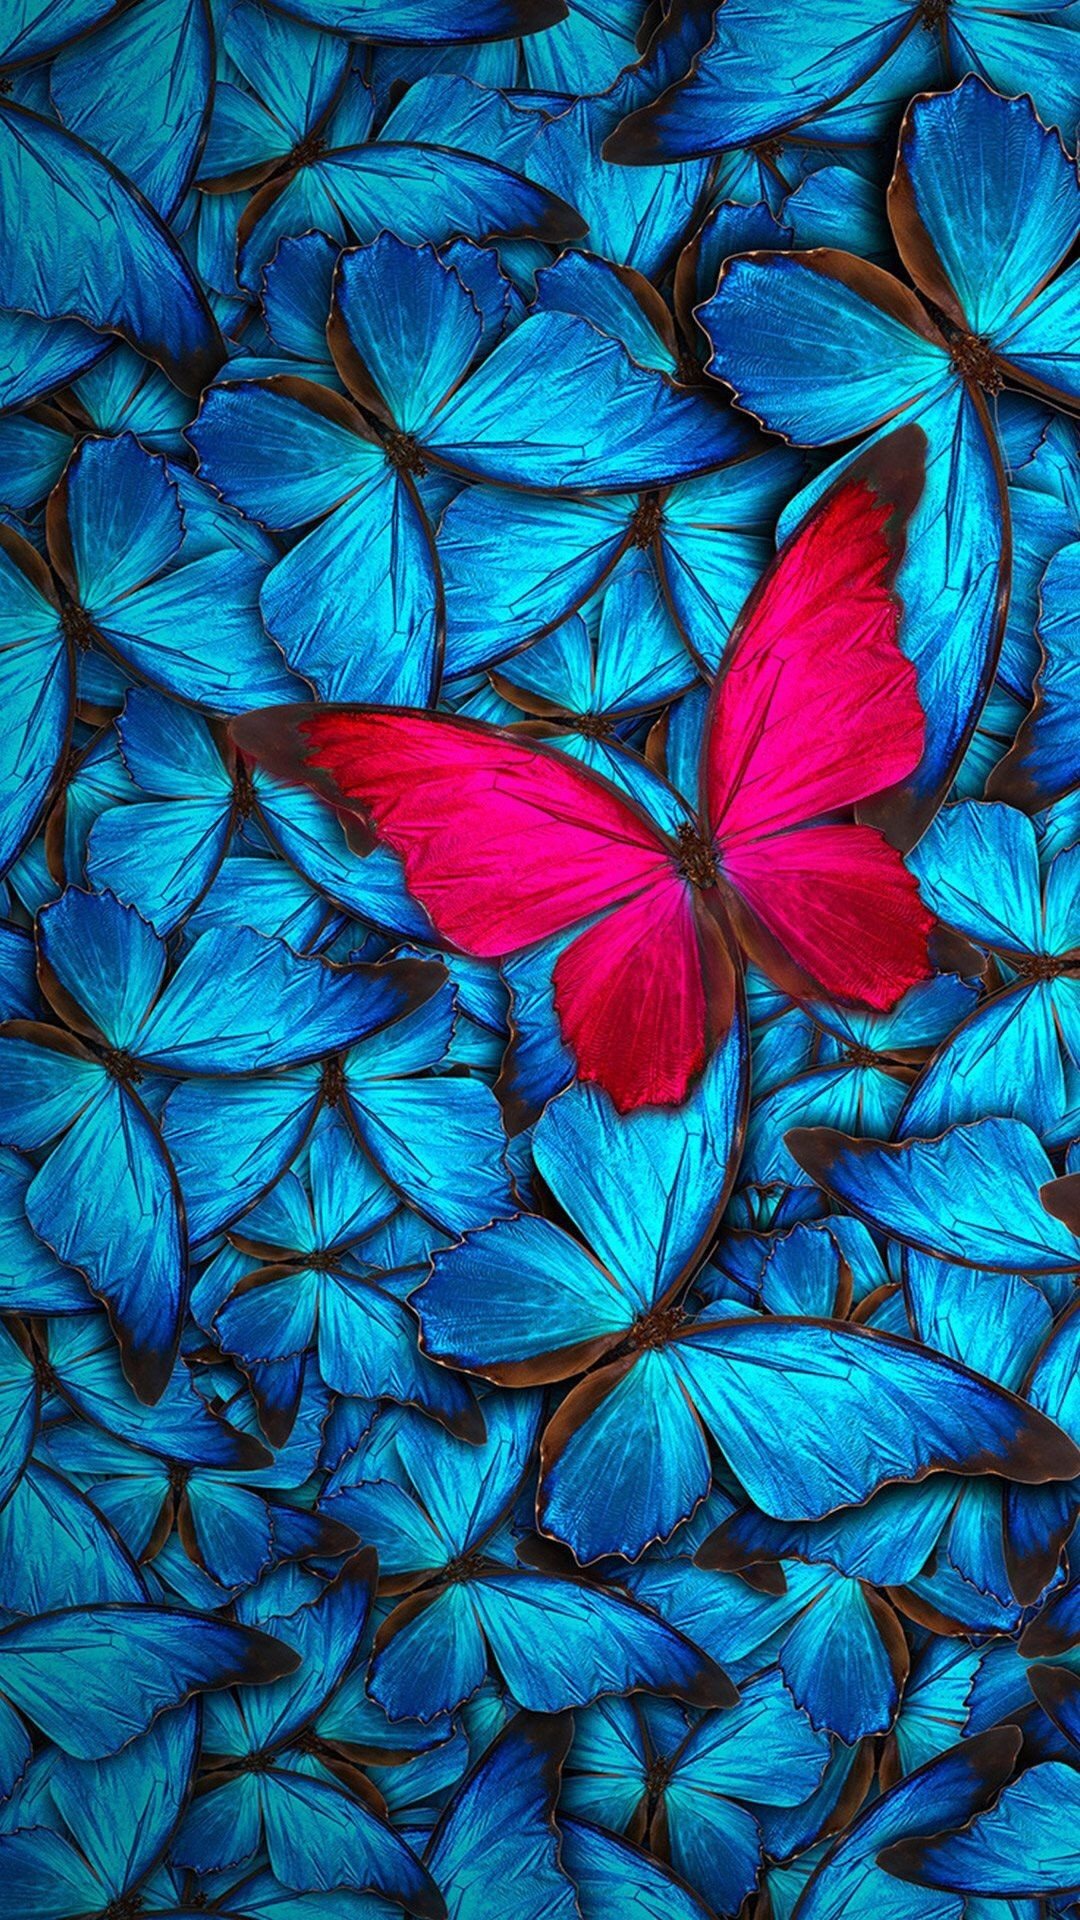 Res: 1080x1920, Blue with Red Butterfly Wallpaper